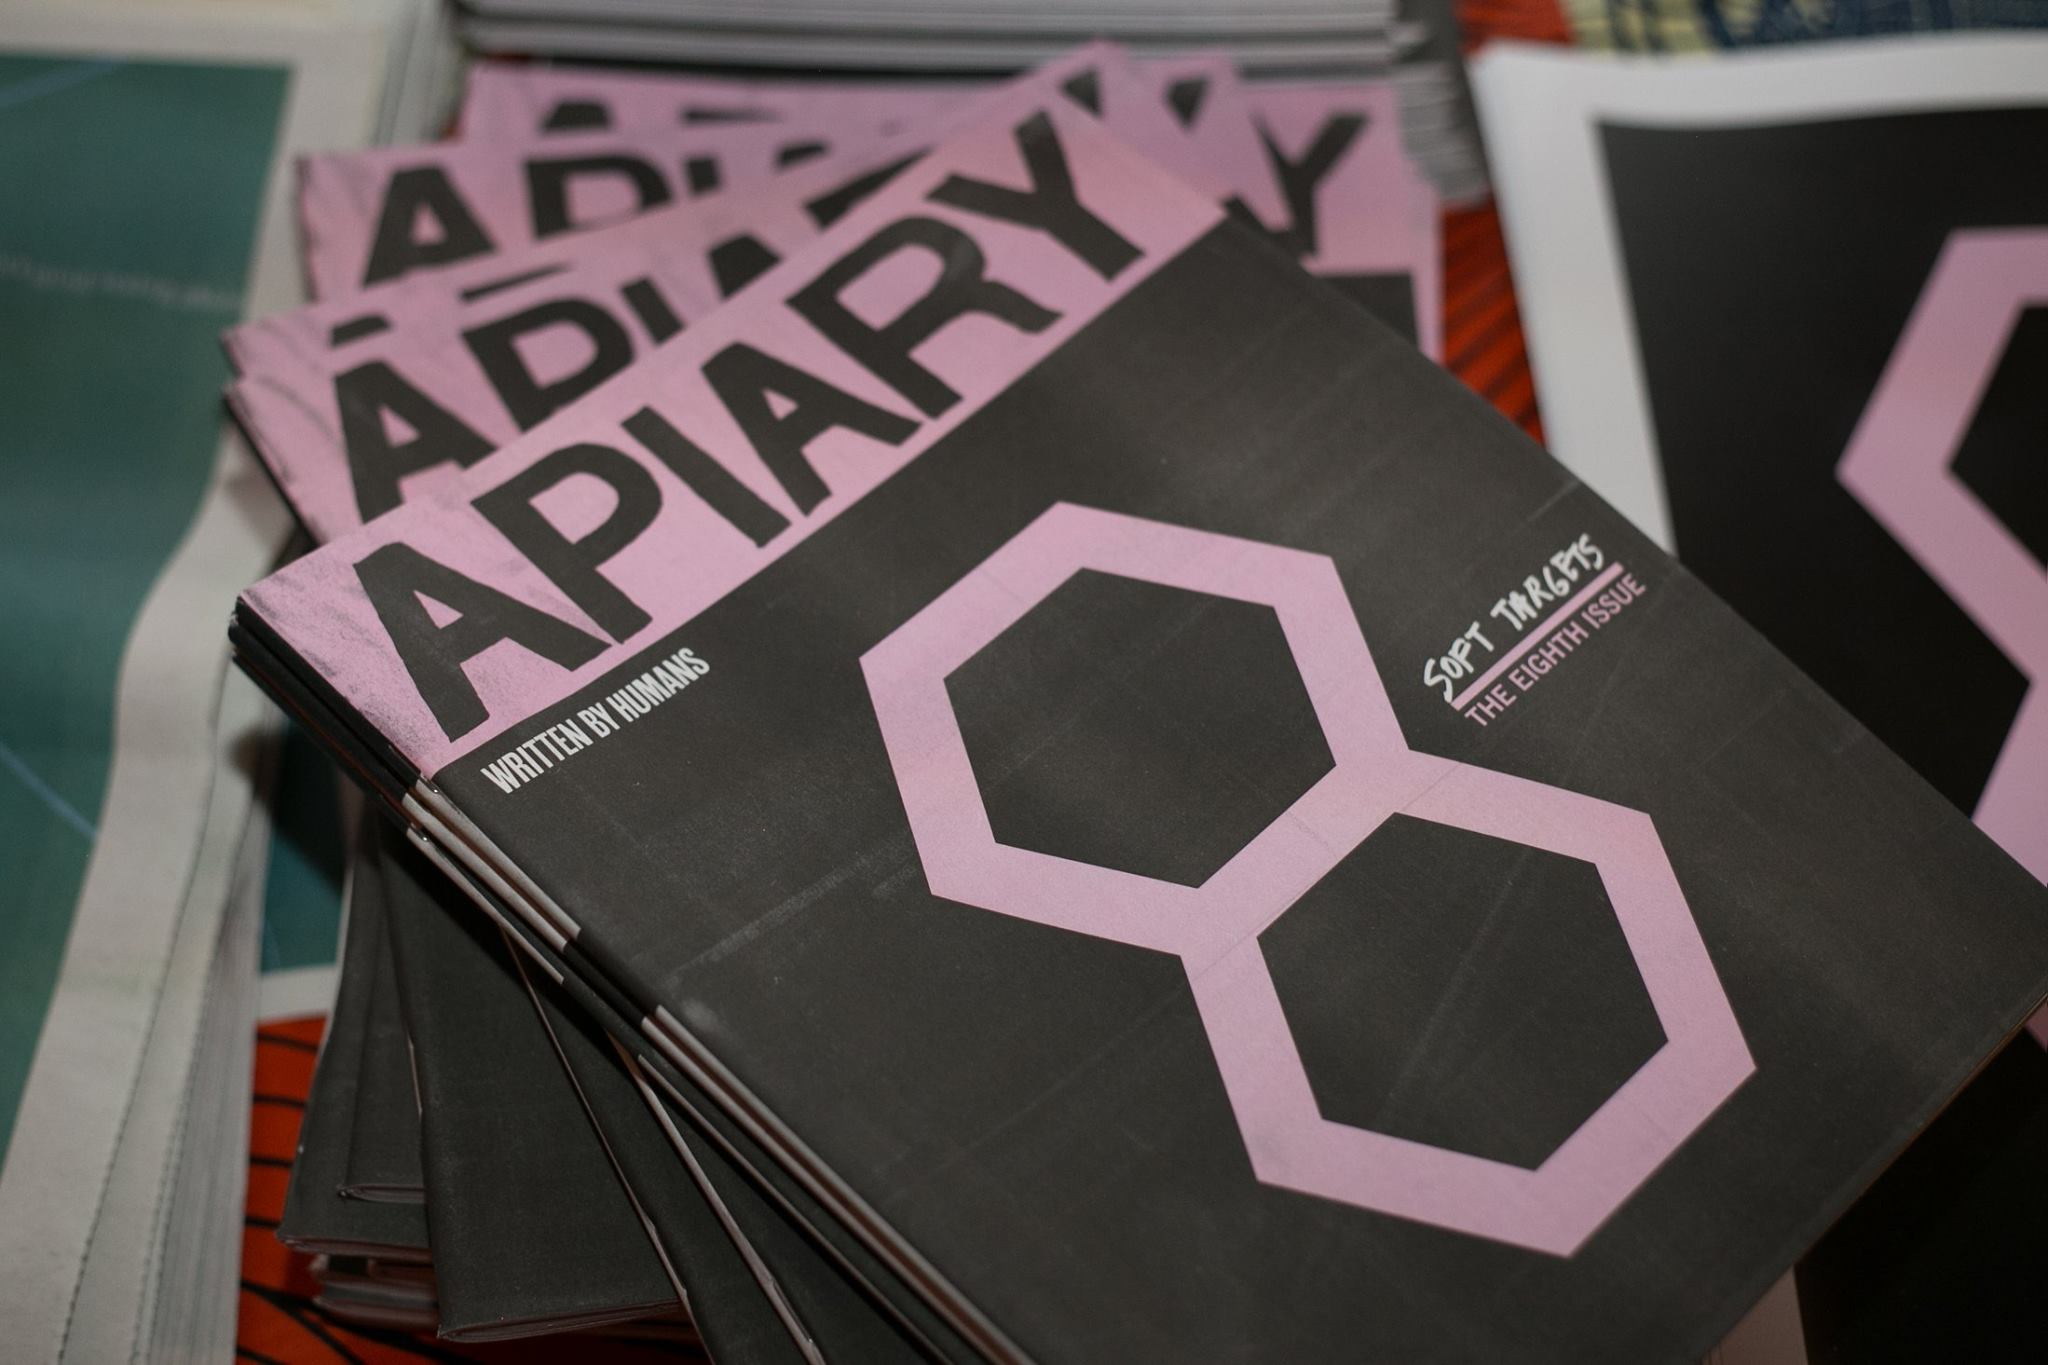 Apiary #8 x Metropolarity is out. Photo by Erin Pitts Photography